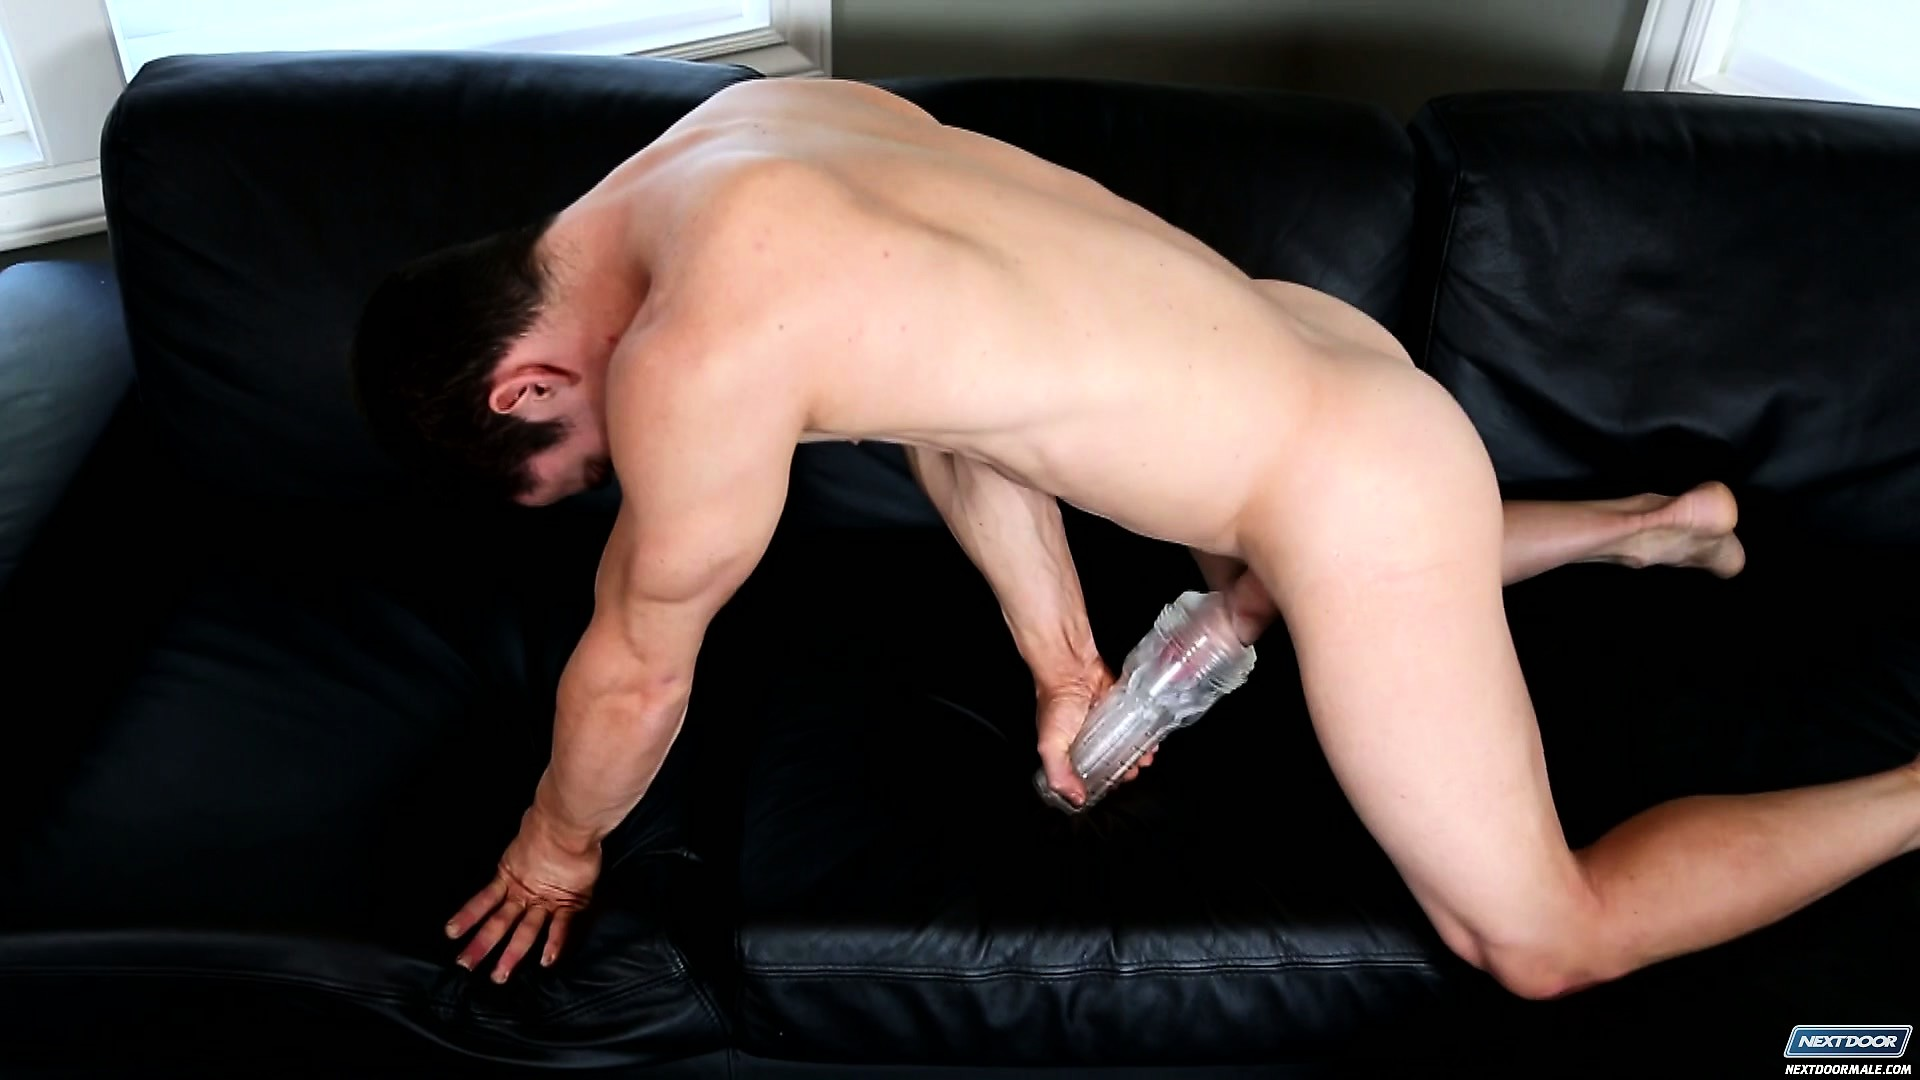 Porno Video of He Jacks Off And Then Gets A Pump To Make His Cock Bigger, And Shows Ass